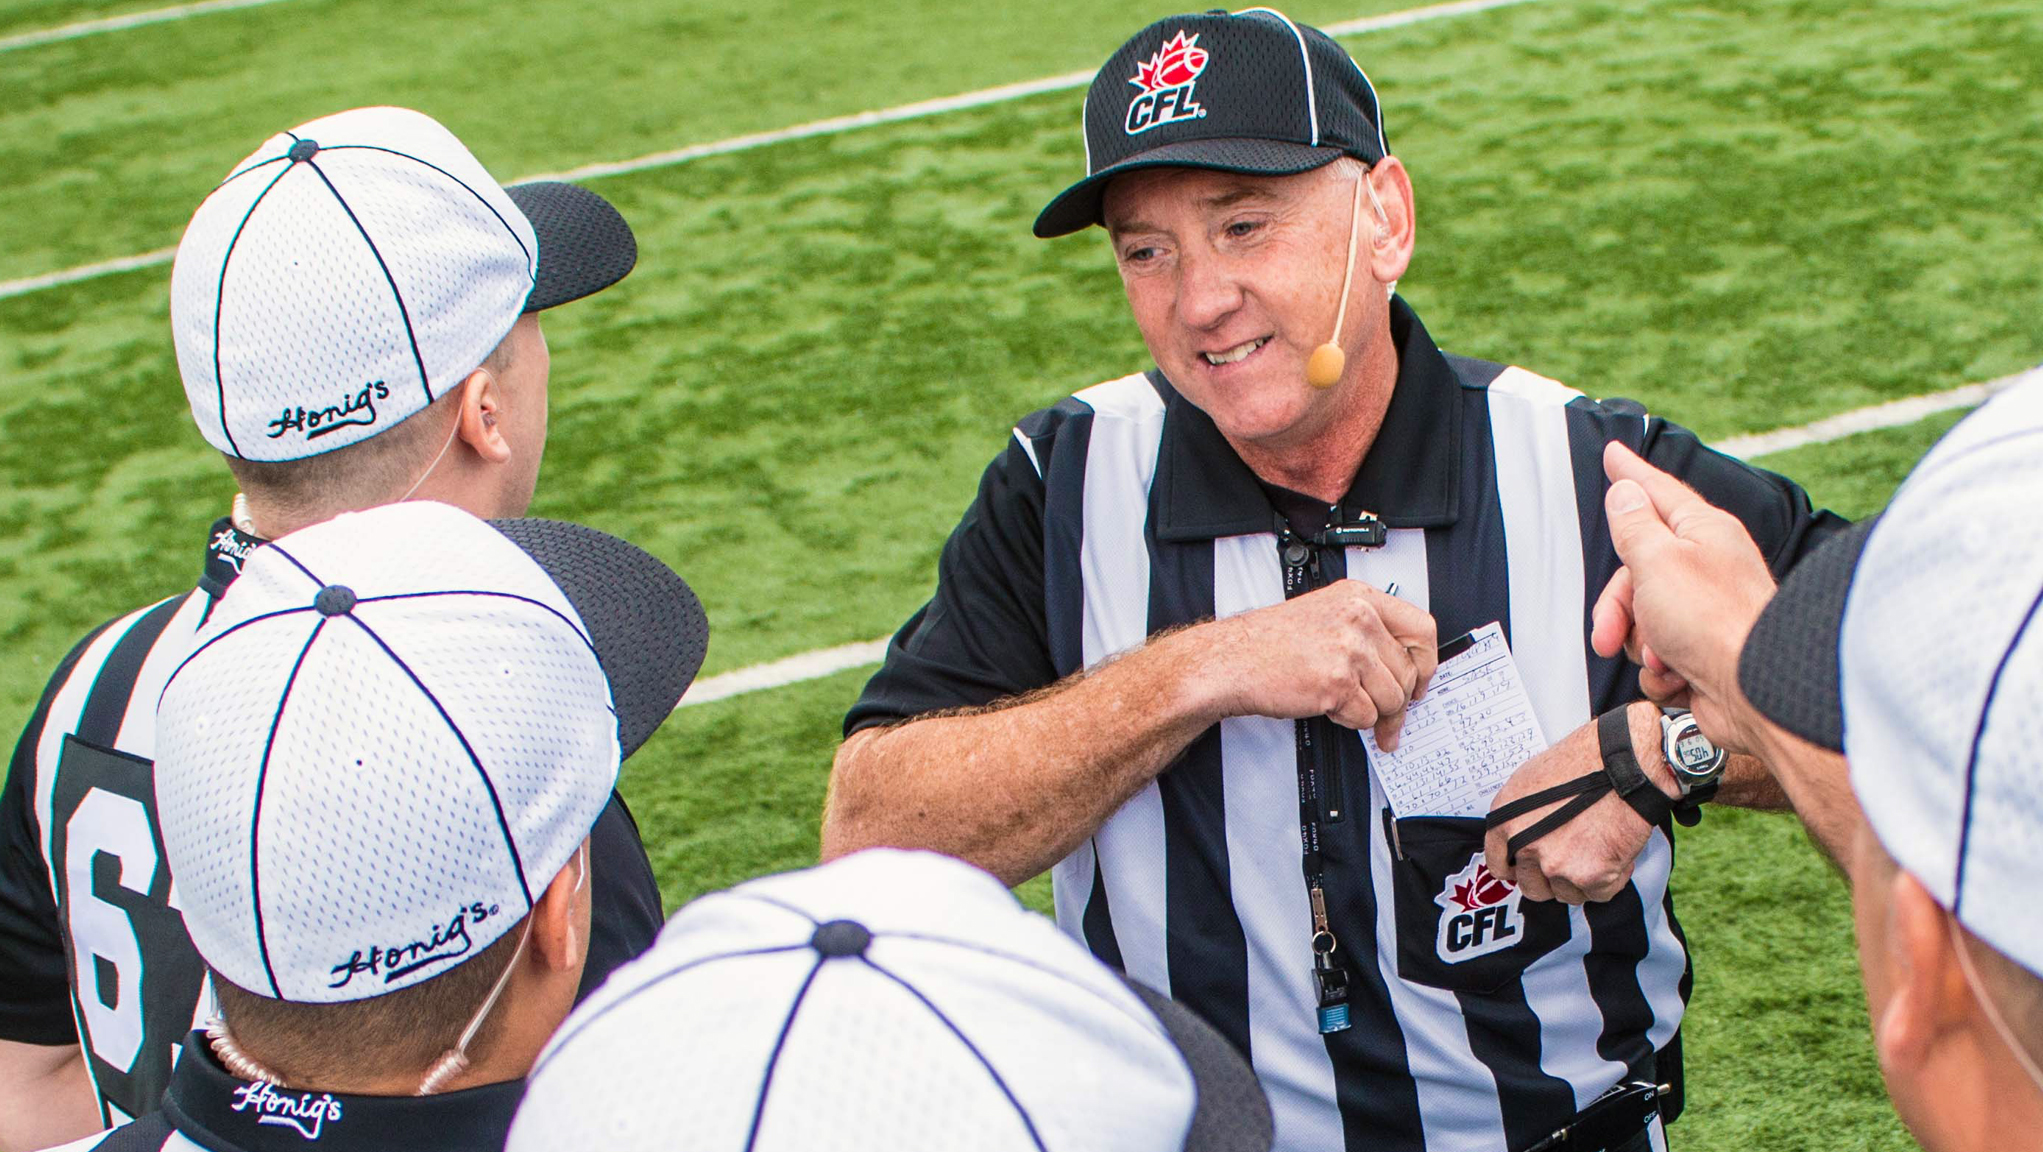 [POST-IT] Collaborazione tra arbitri NFL e CFL